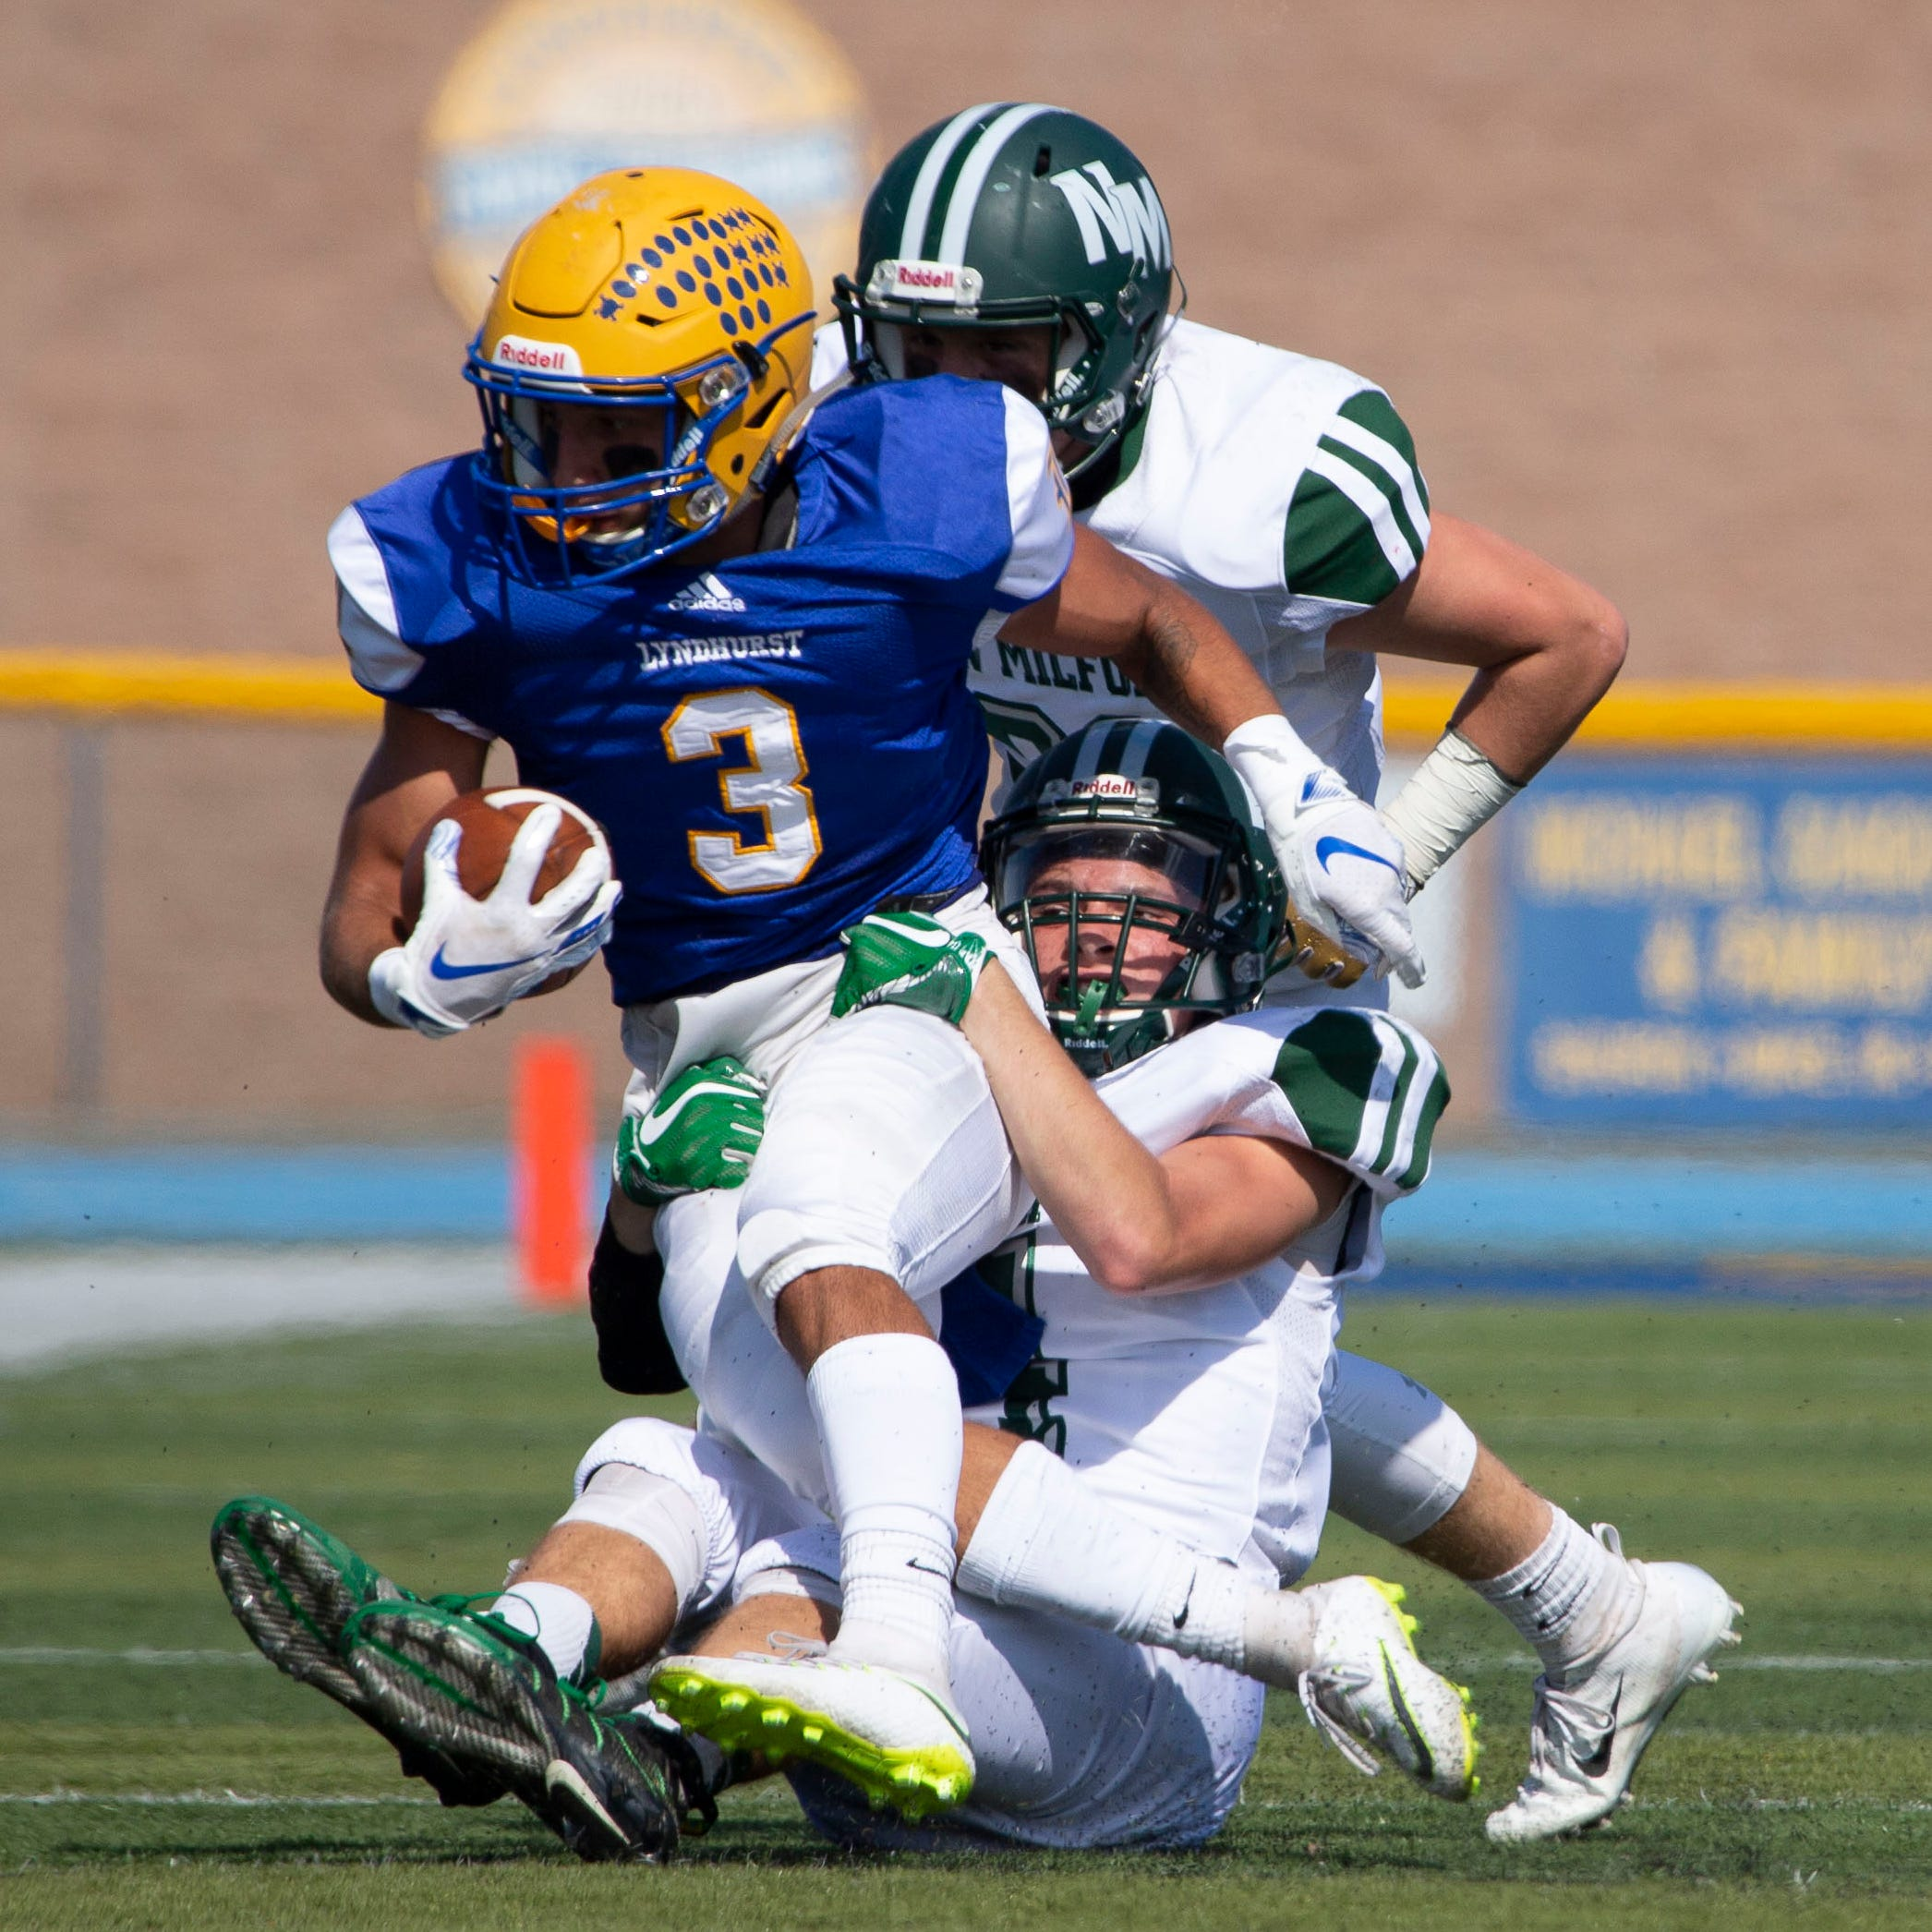 Lyndhurst vs. Rutherford football : Keys to the game